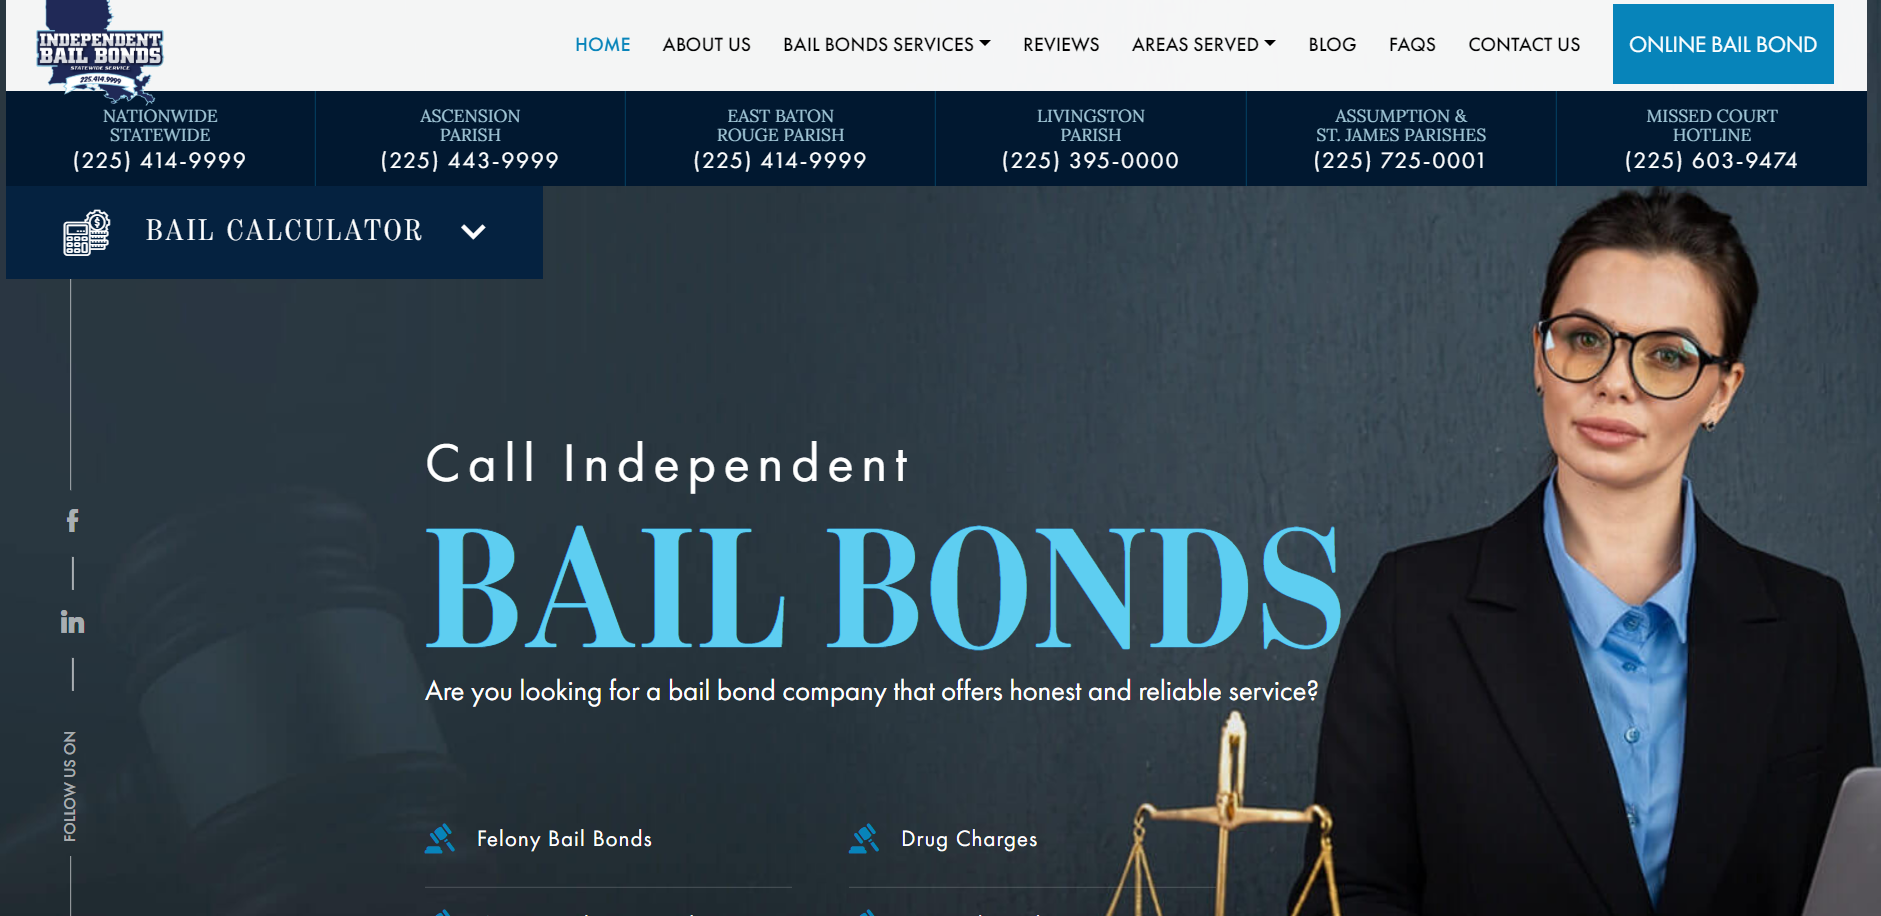 Baton Rouge Bail Bonds